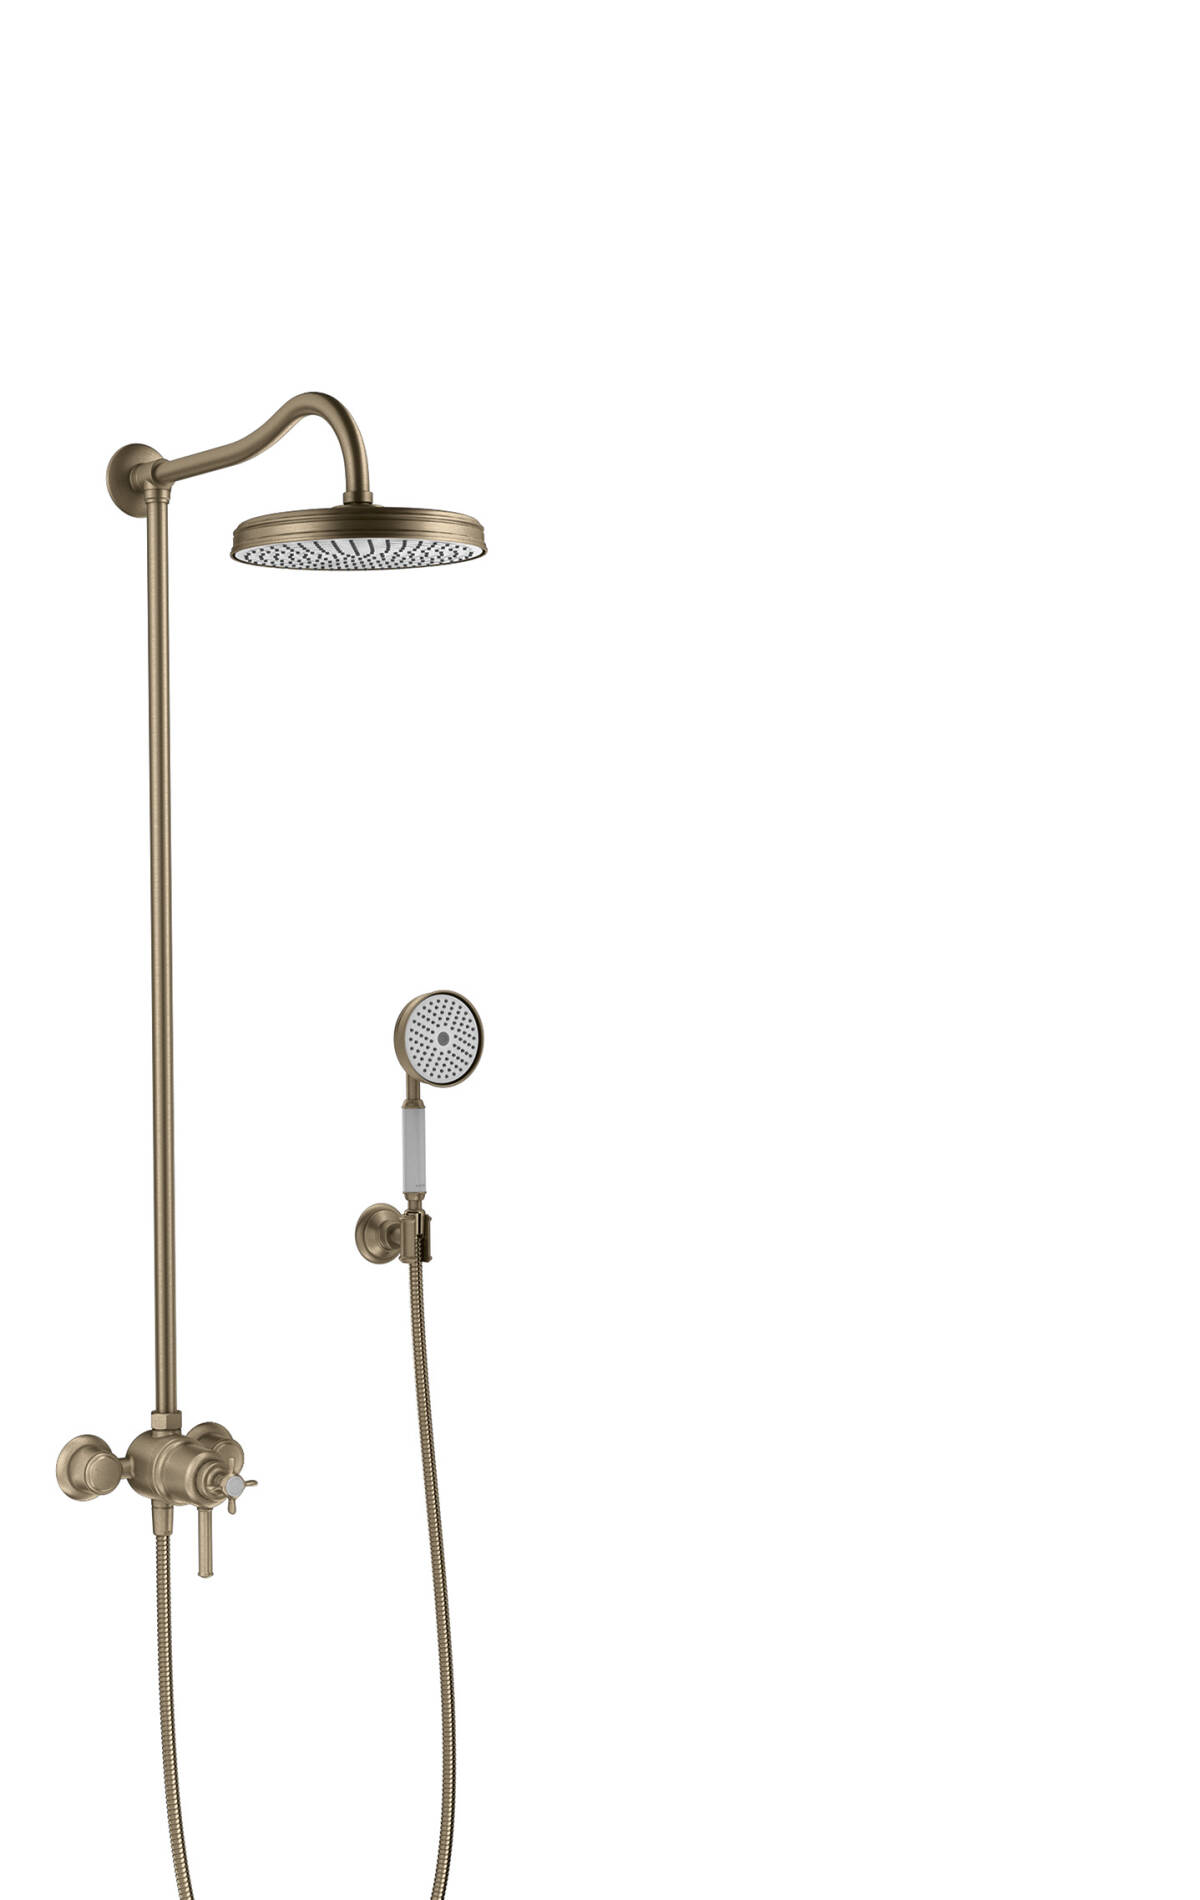 Showerpipe with thermostat and overhead shower 1jet, Brushed Nickel, 16570820